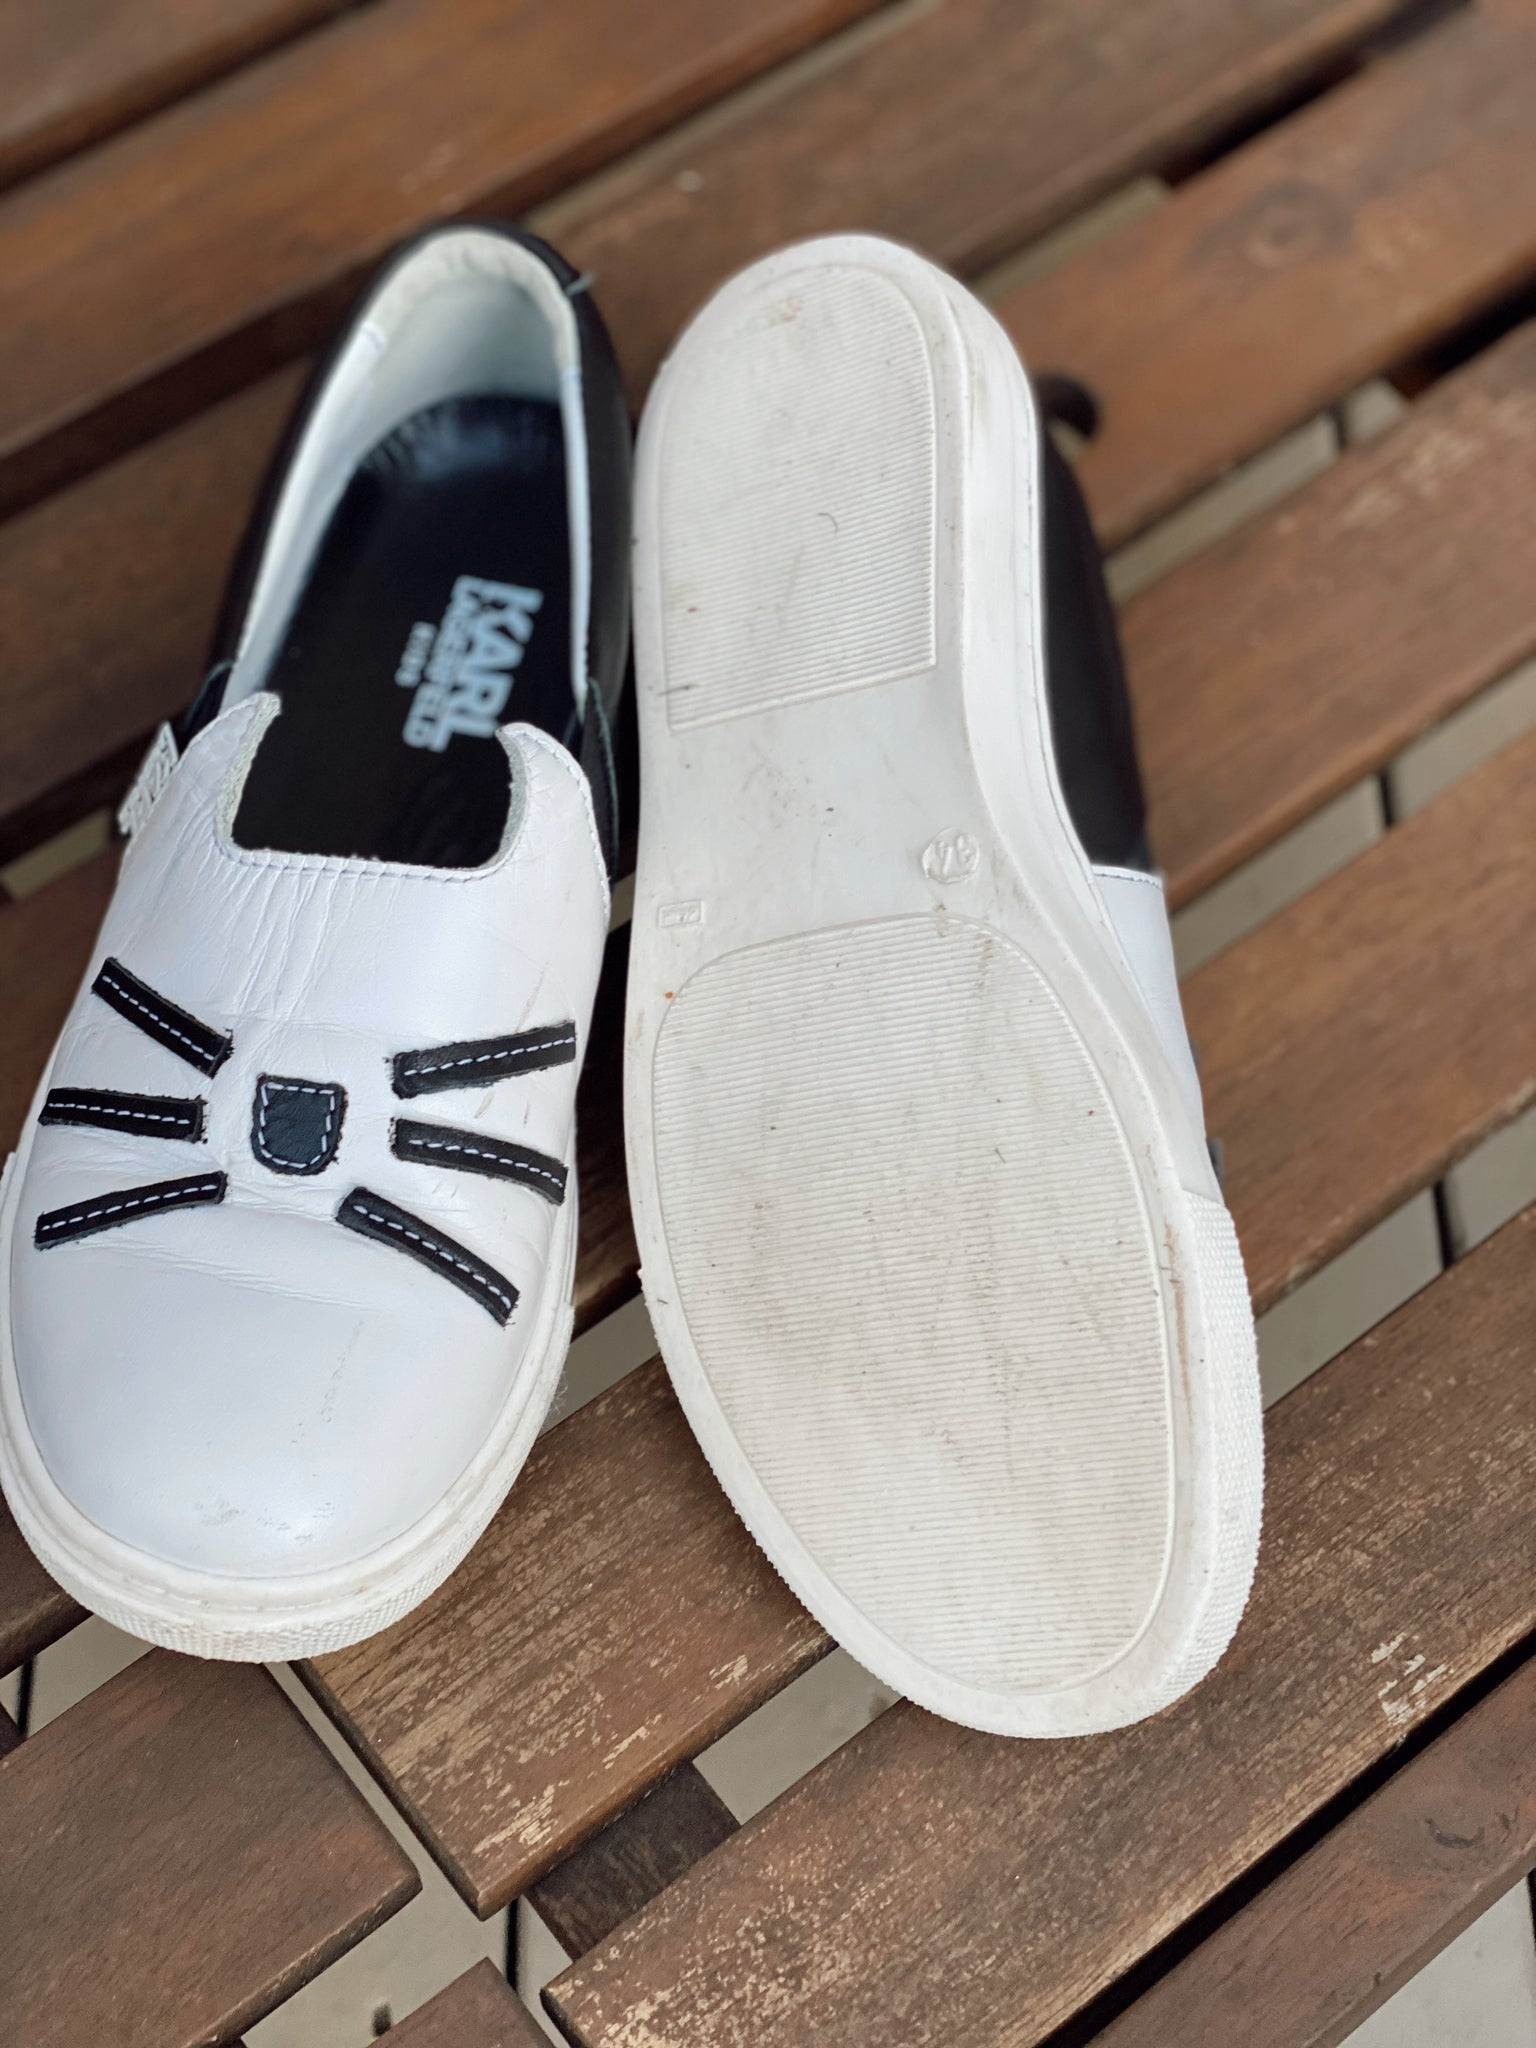 Karl Lagerfield Slip On Sneaker